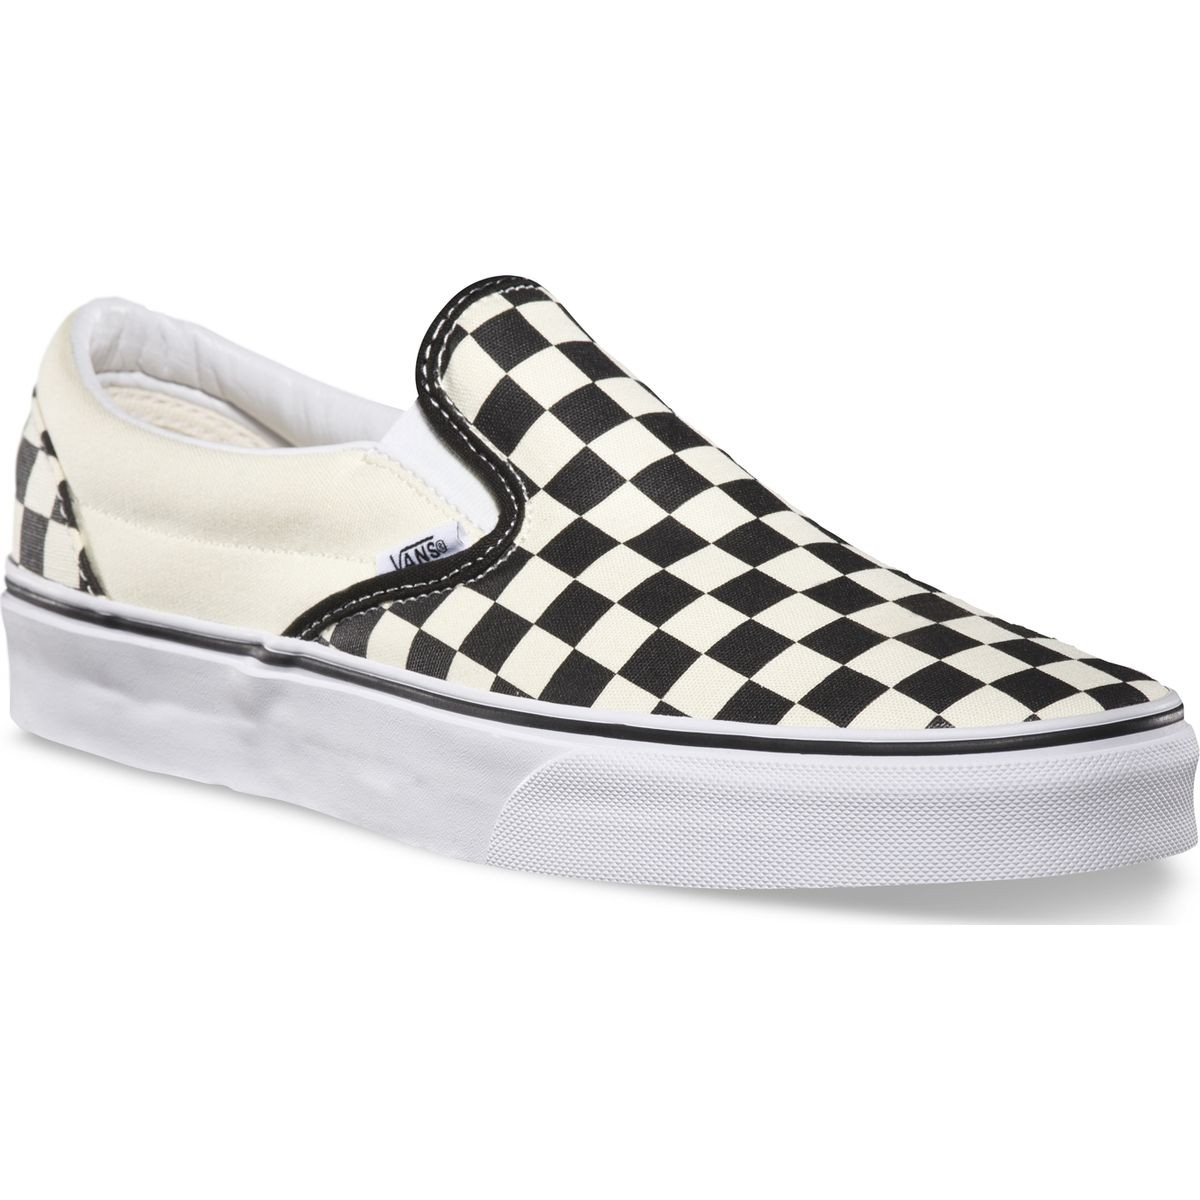 Vans Classic Slip On Shoes - Black / White Checkerboard